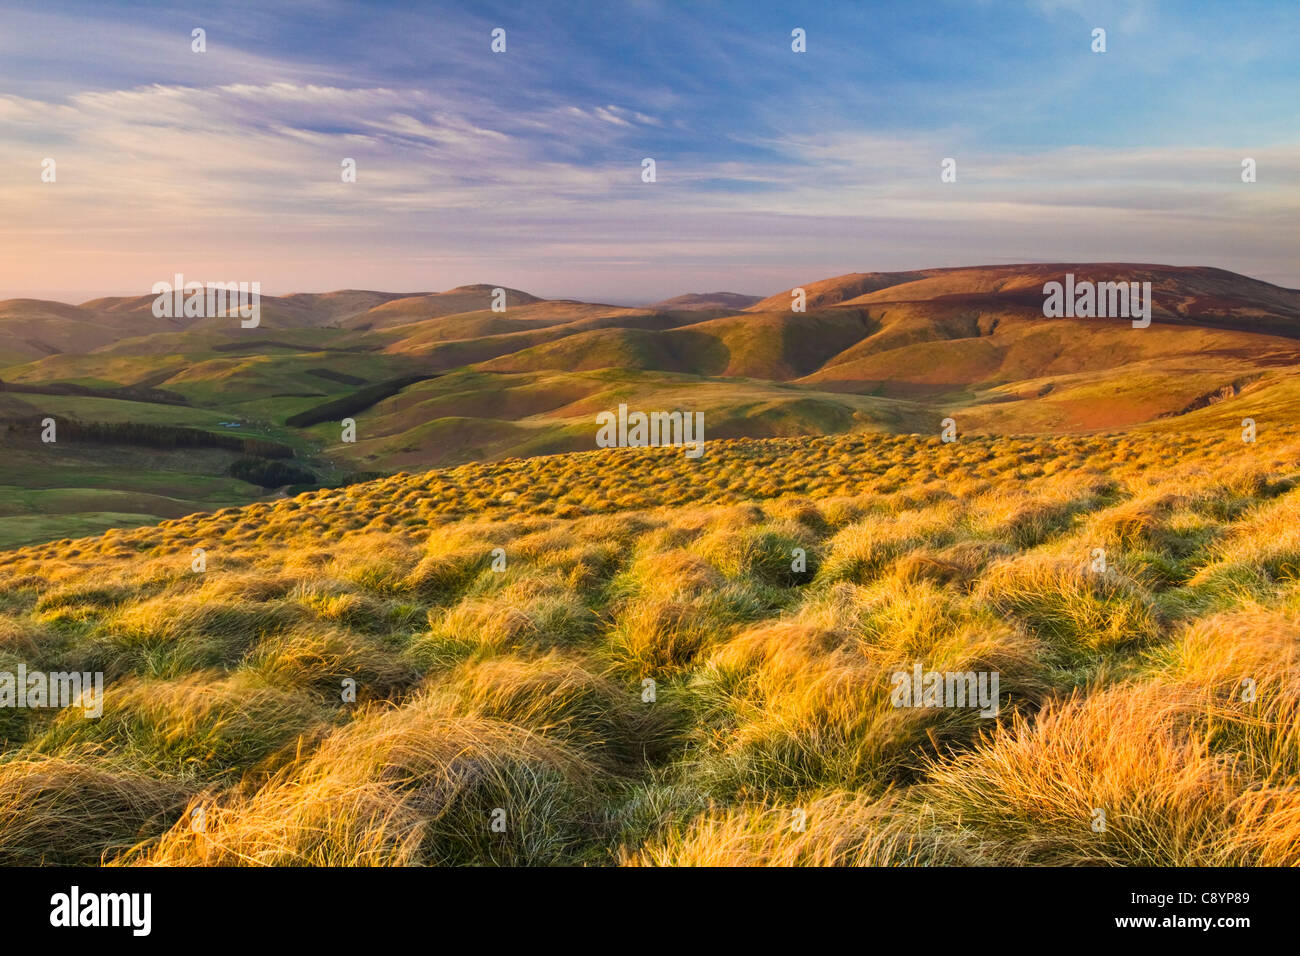 View from Windy Gyle on the Border Ridge and Pennine Way in the Northumbrian Cheviot Hills, England - Stock Image